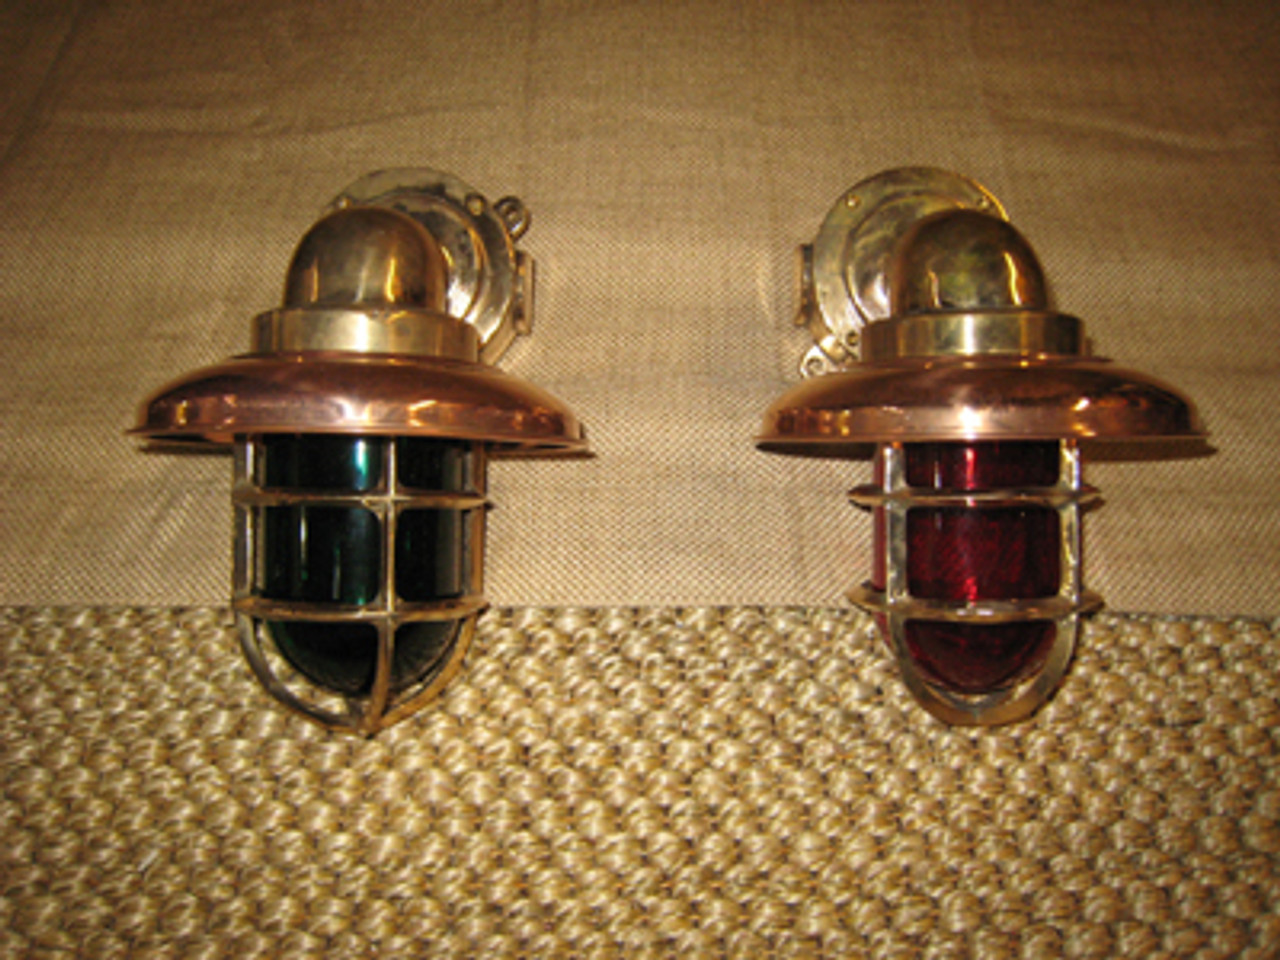 Pair of 90 degree passageway lights with red and green lens